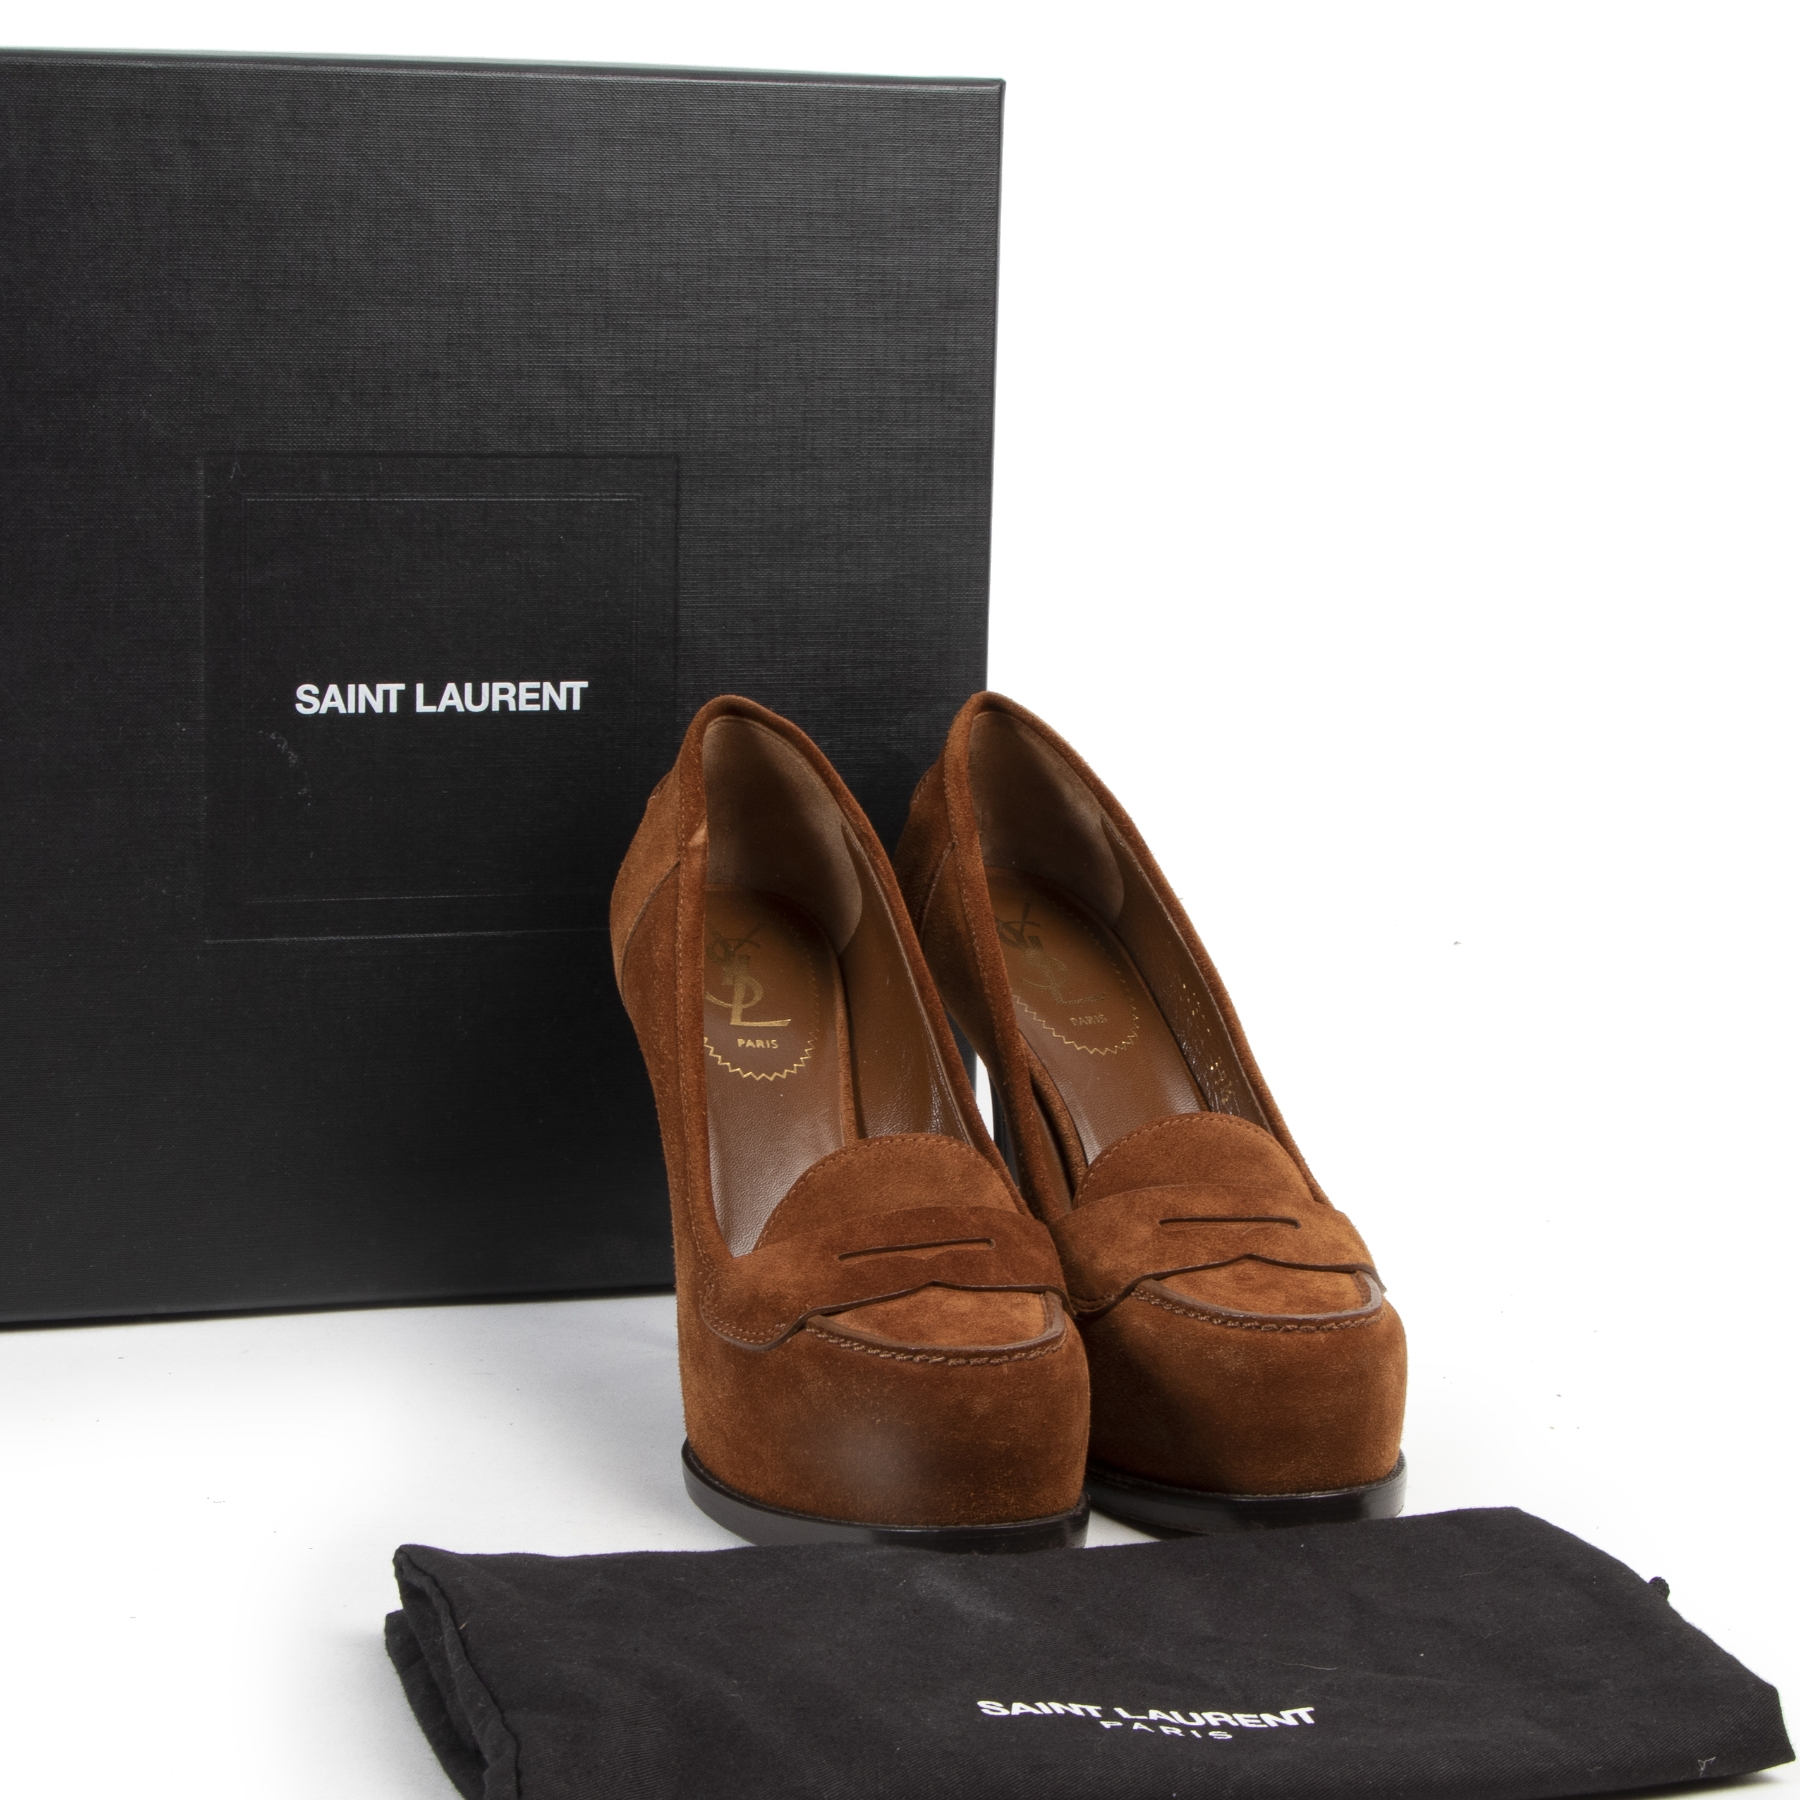 We buy and sell your authentic Saint Laurent Camel Suede Tribute Pumps